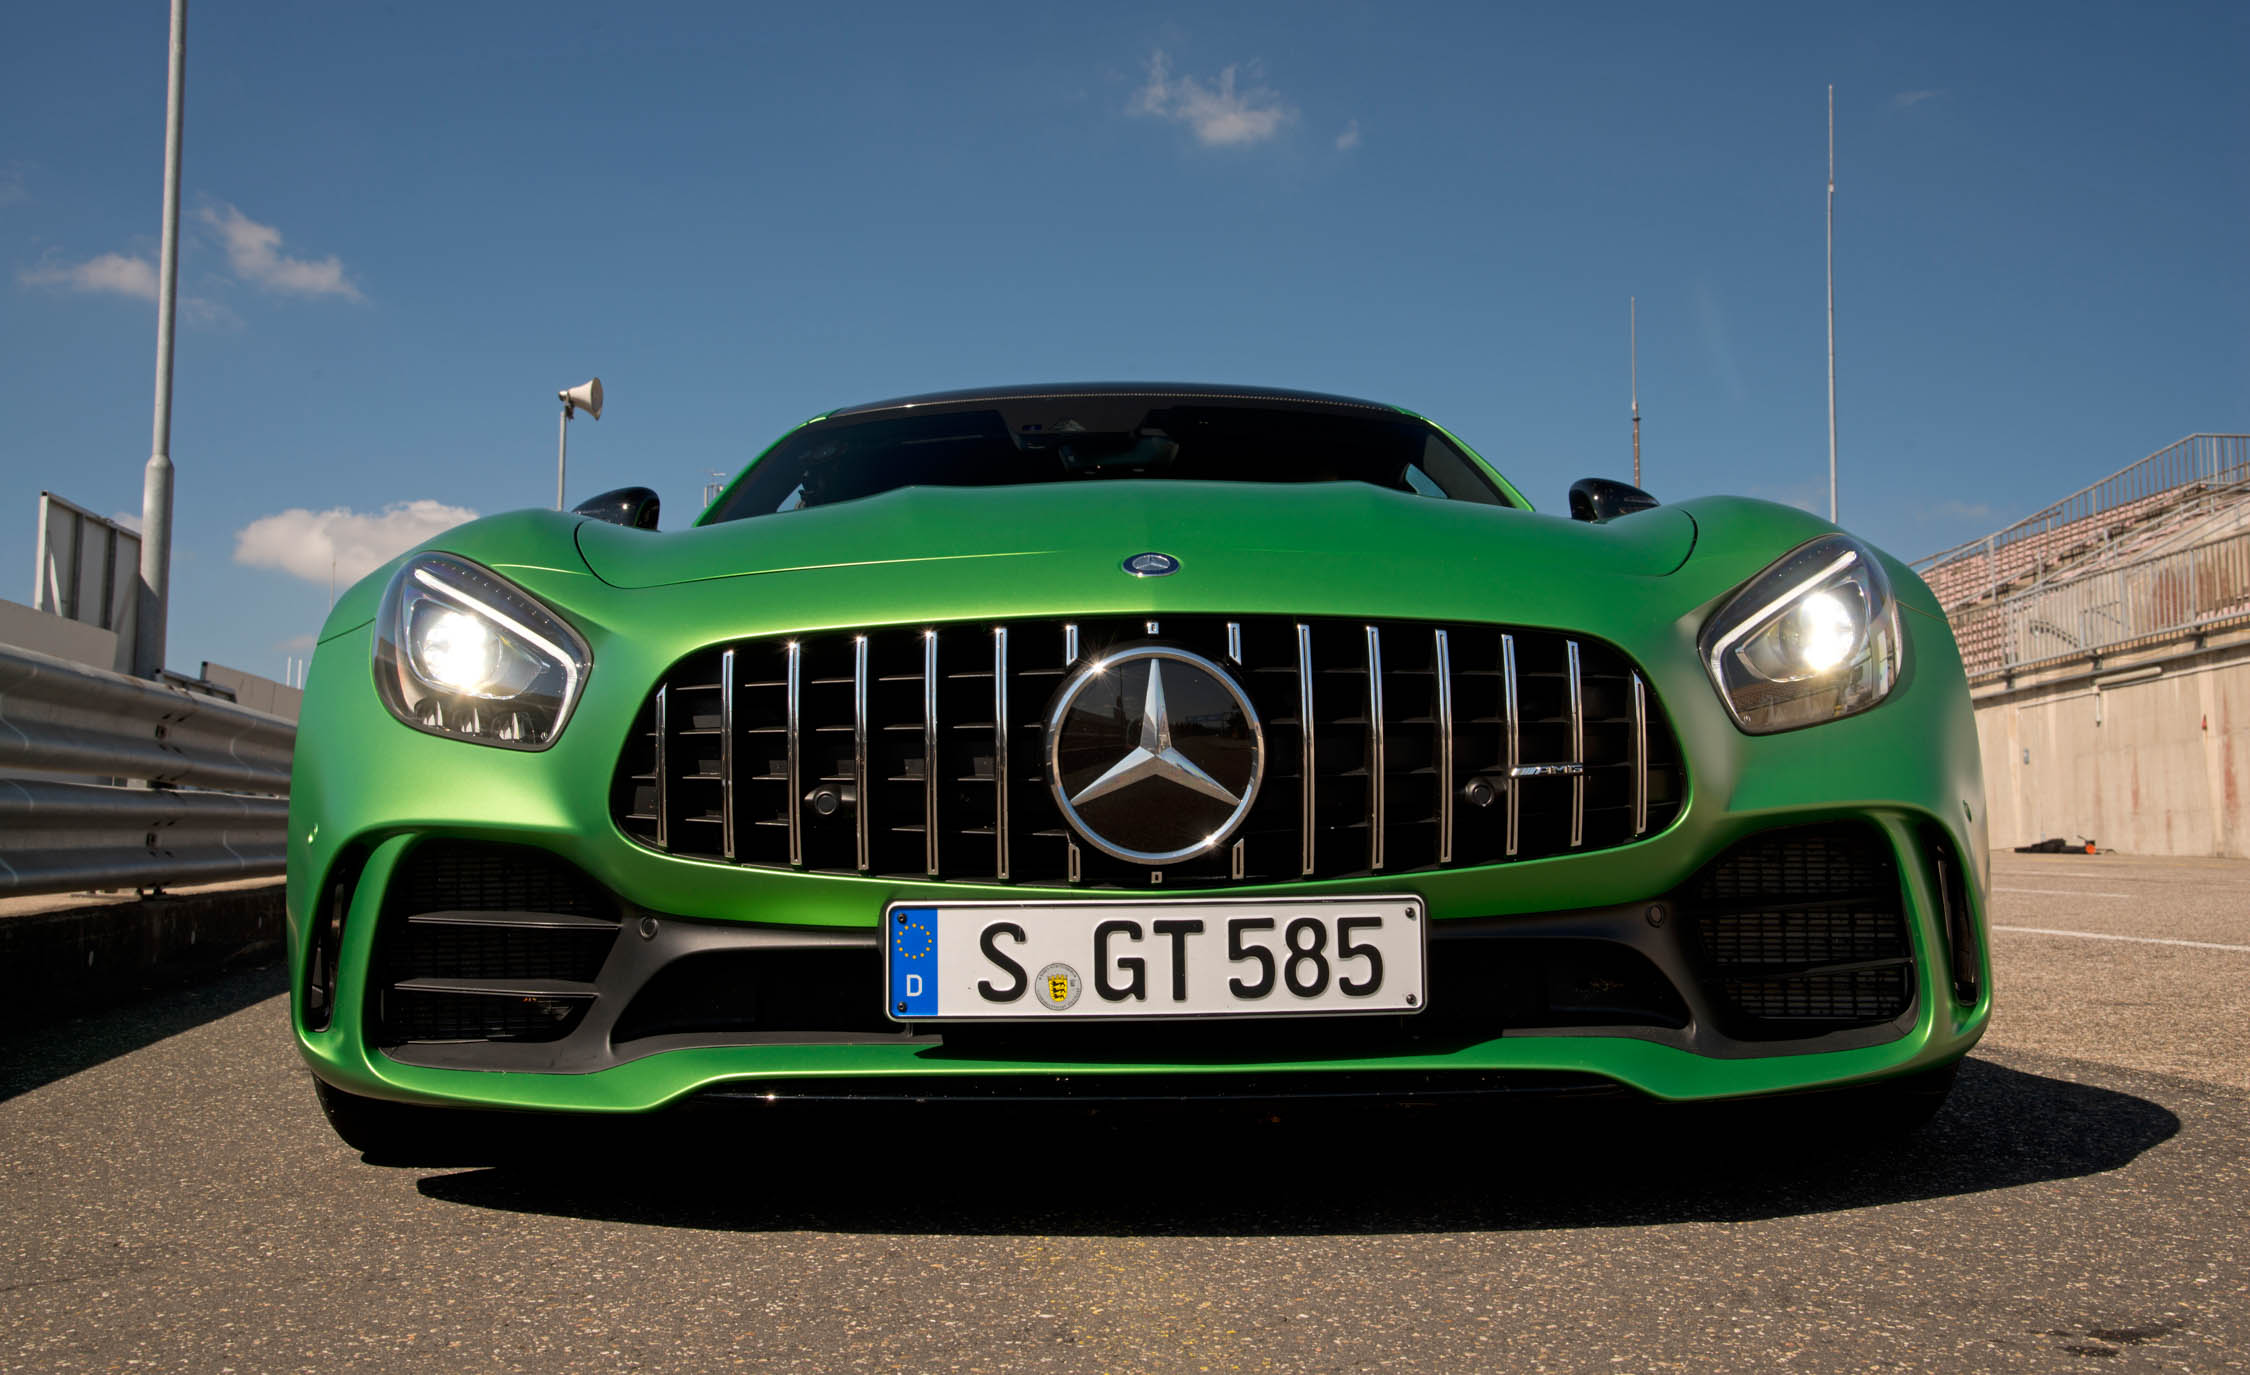 2017 Mercedes Amg Gt R Exterior Front End (View 16 of 22)